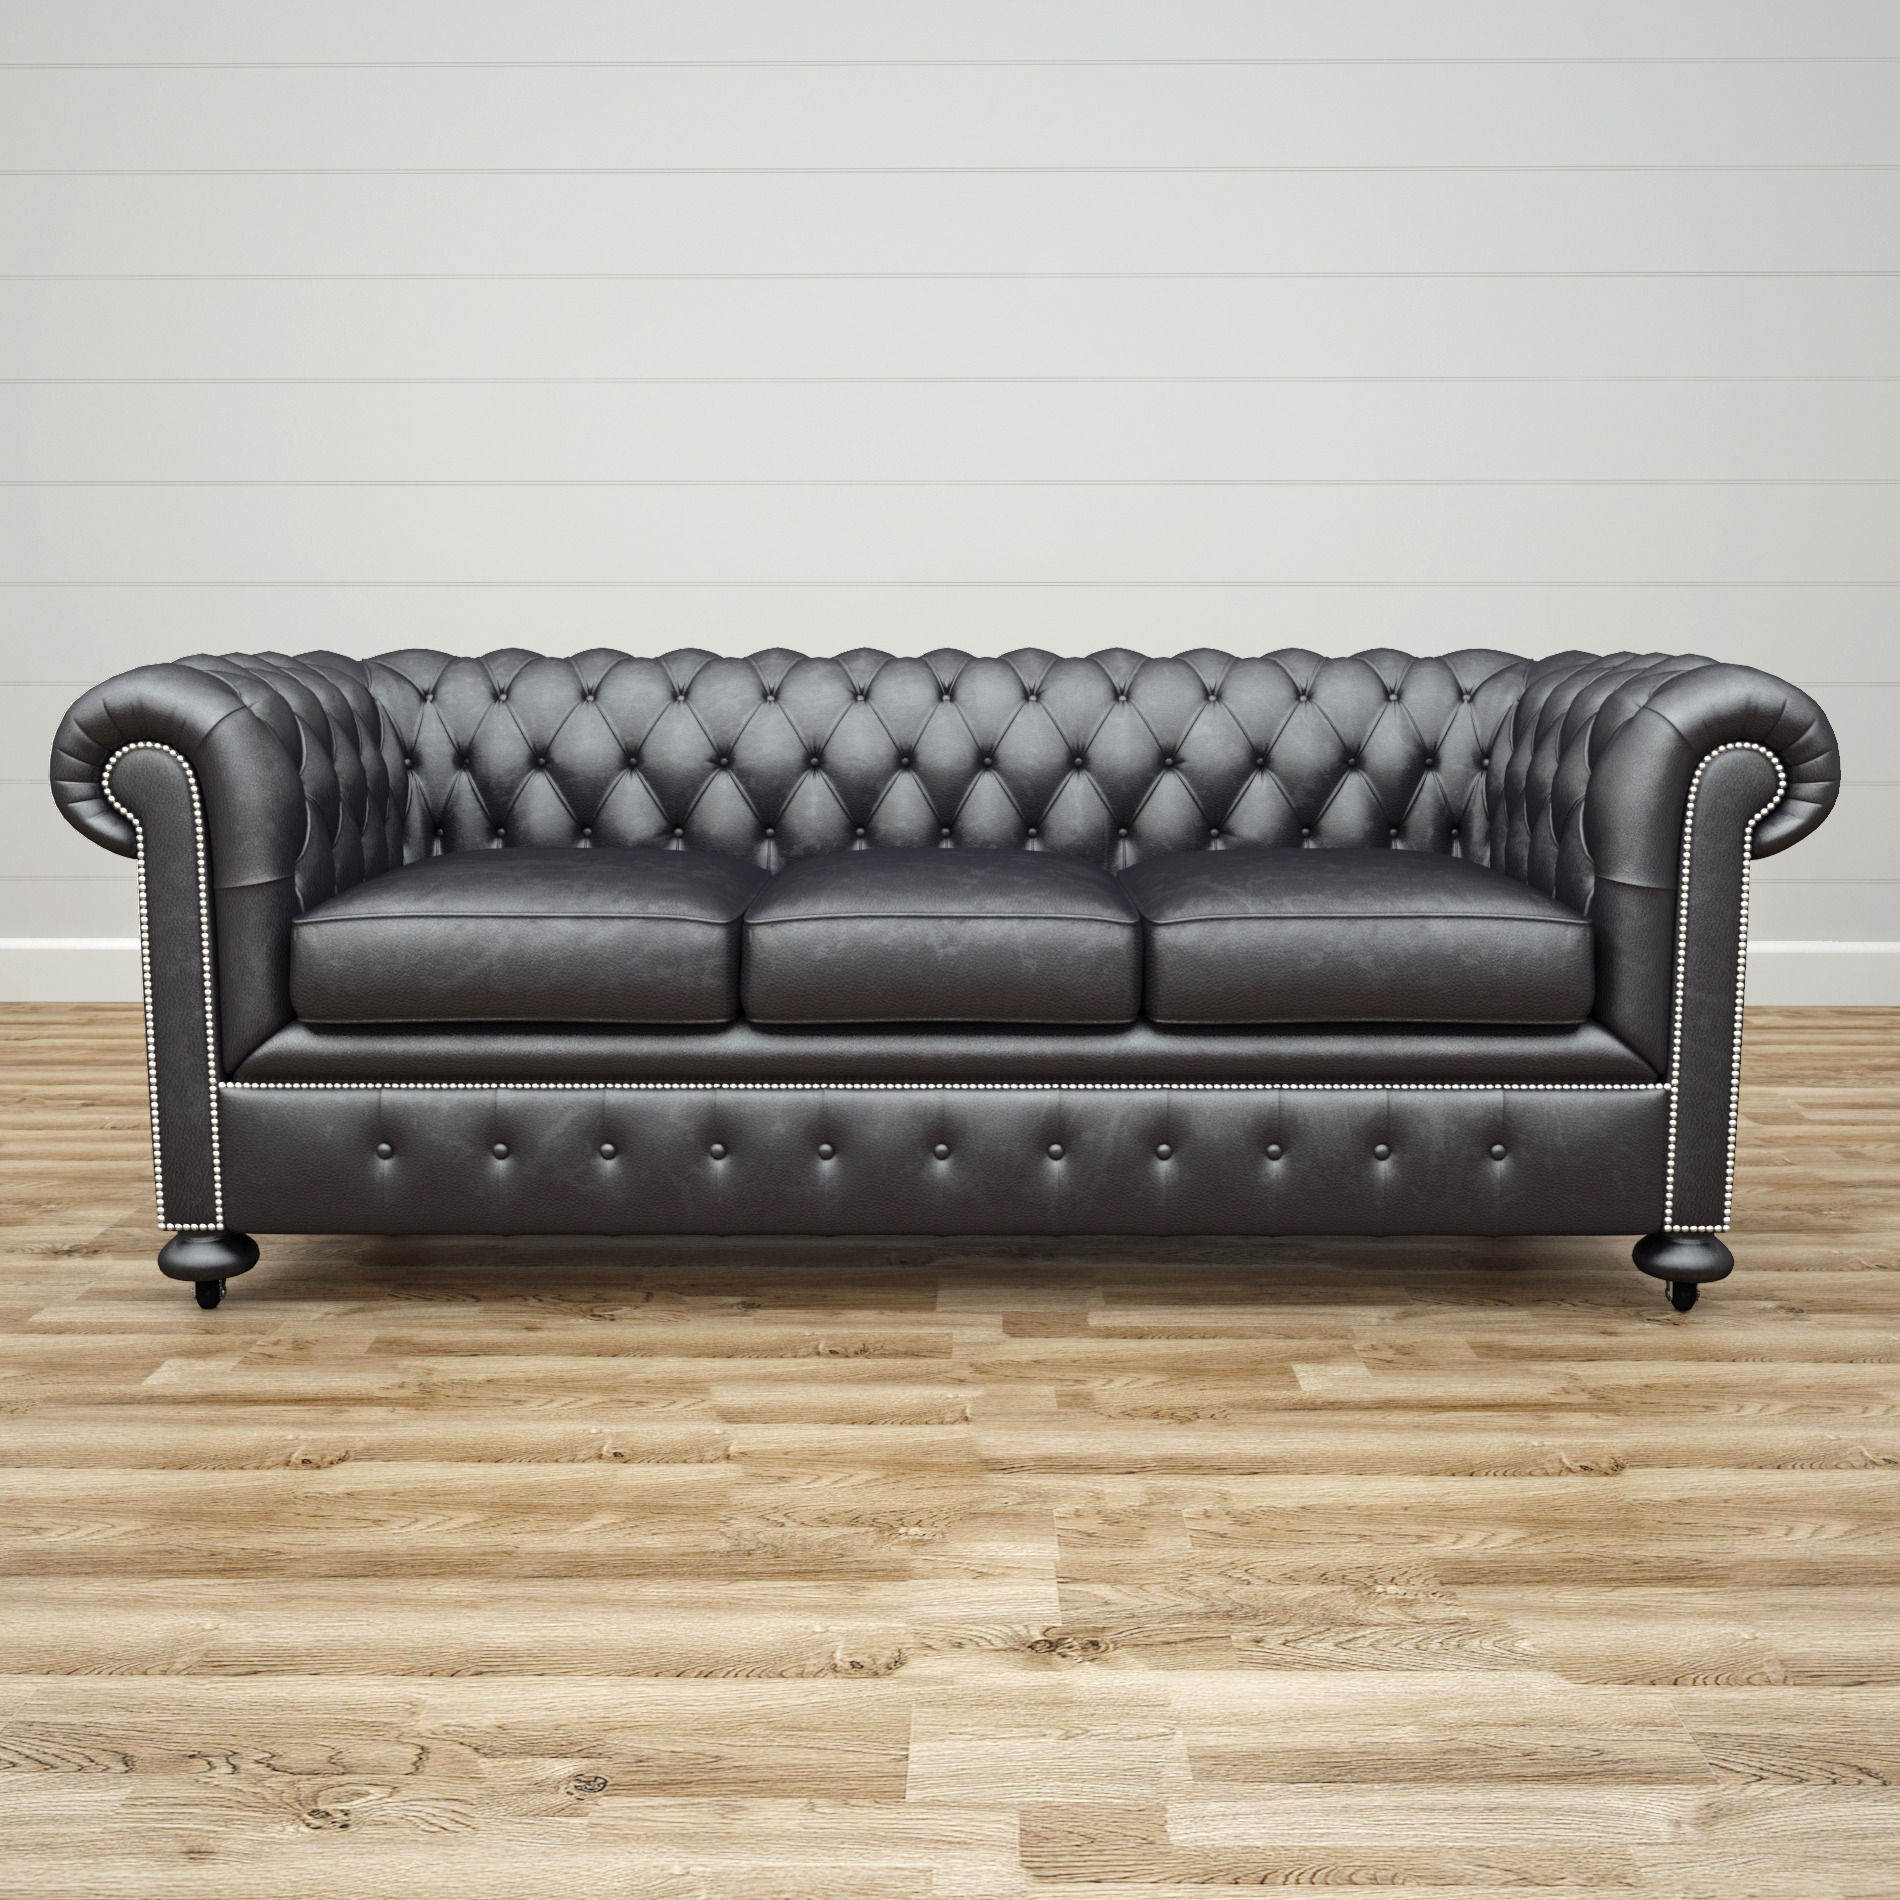 3D William Blake Chesterfield Sofa